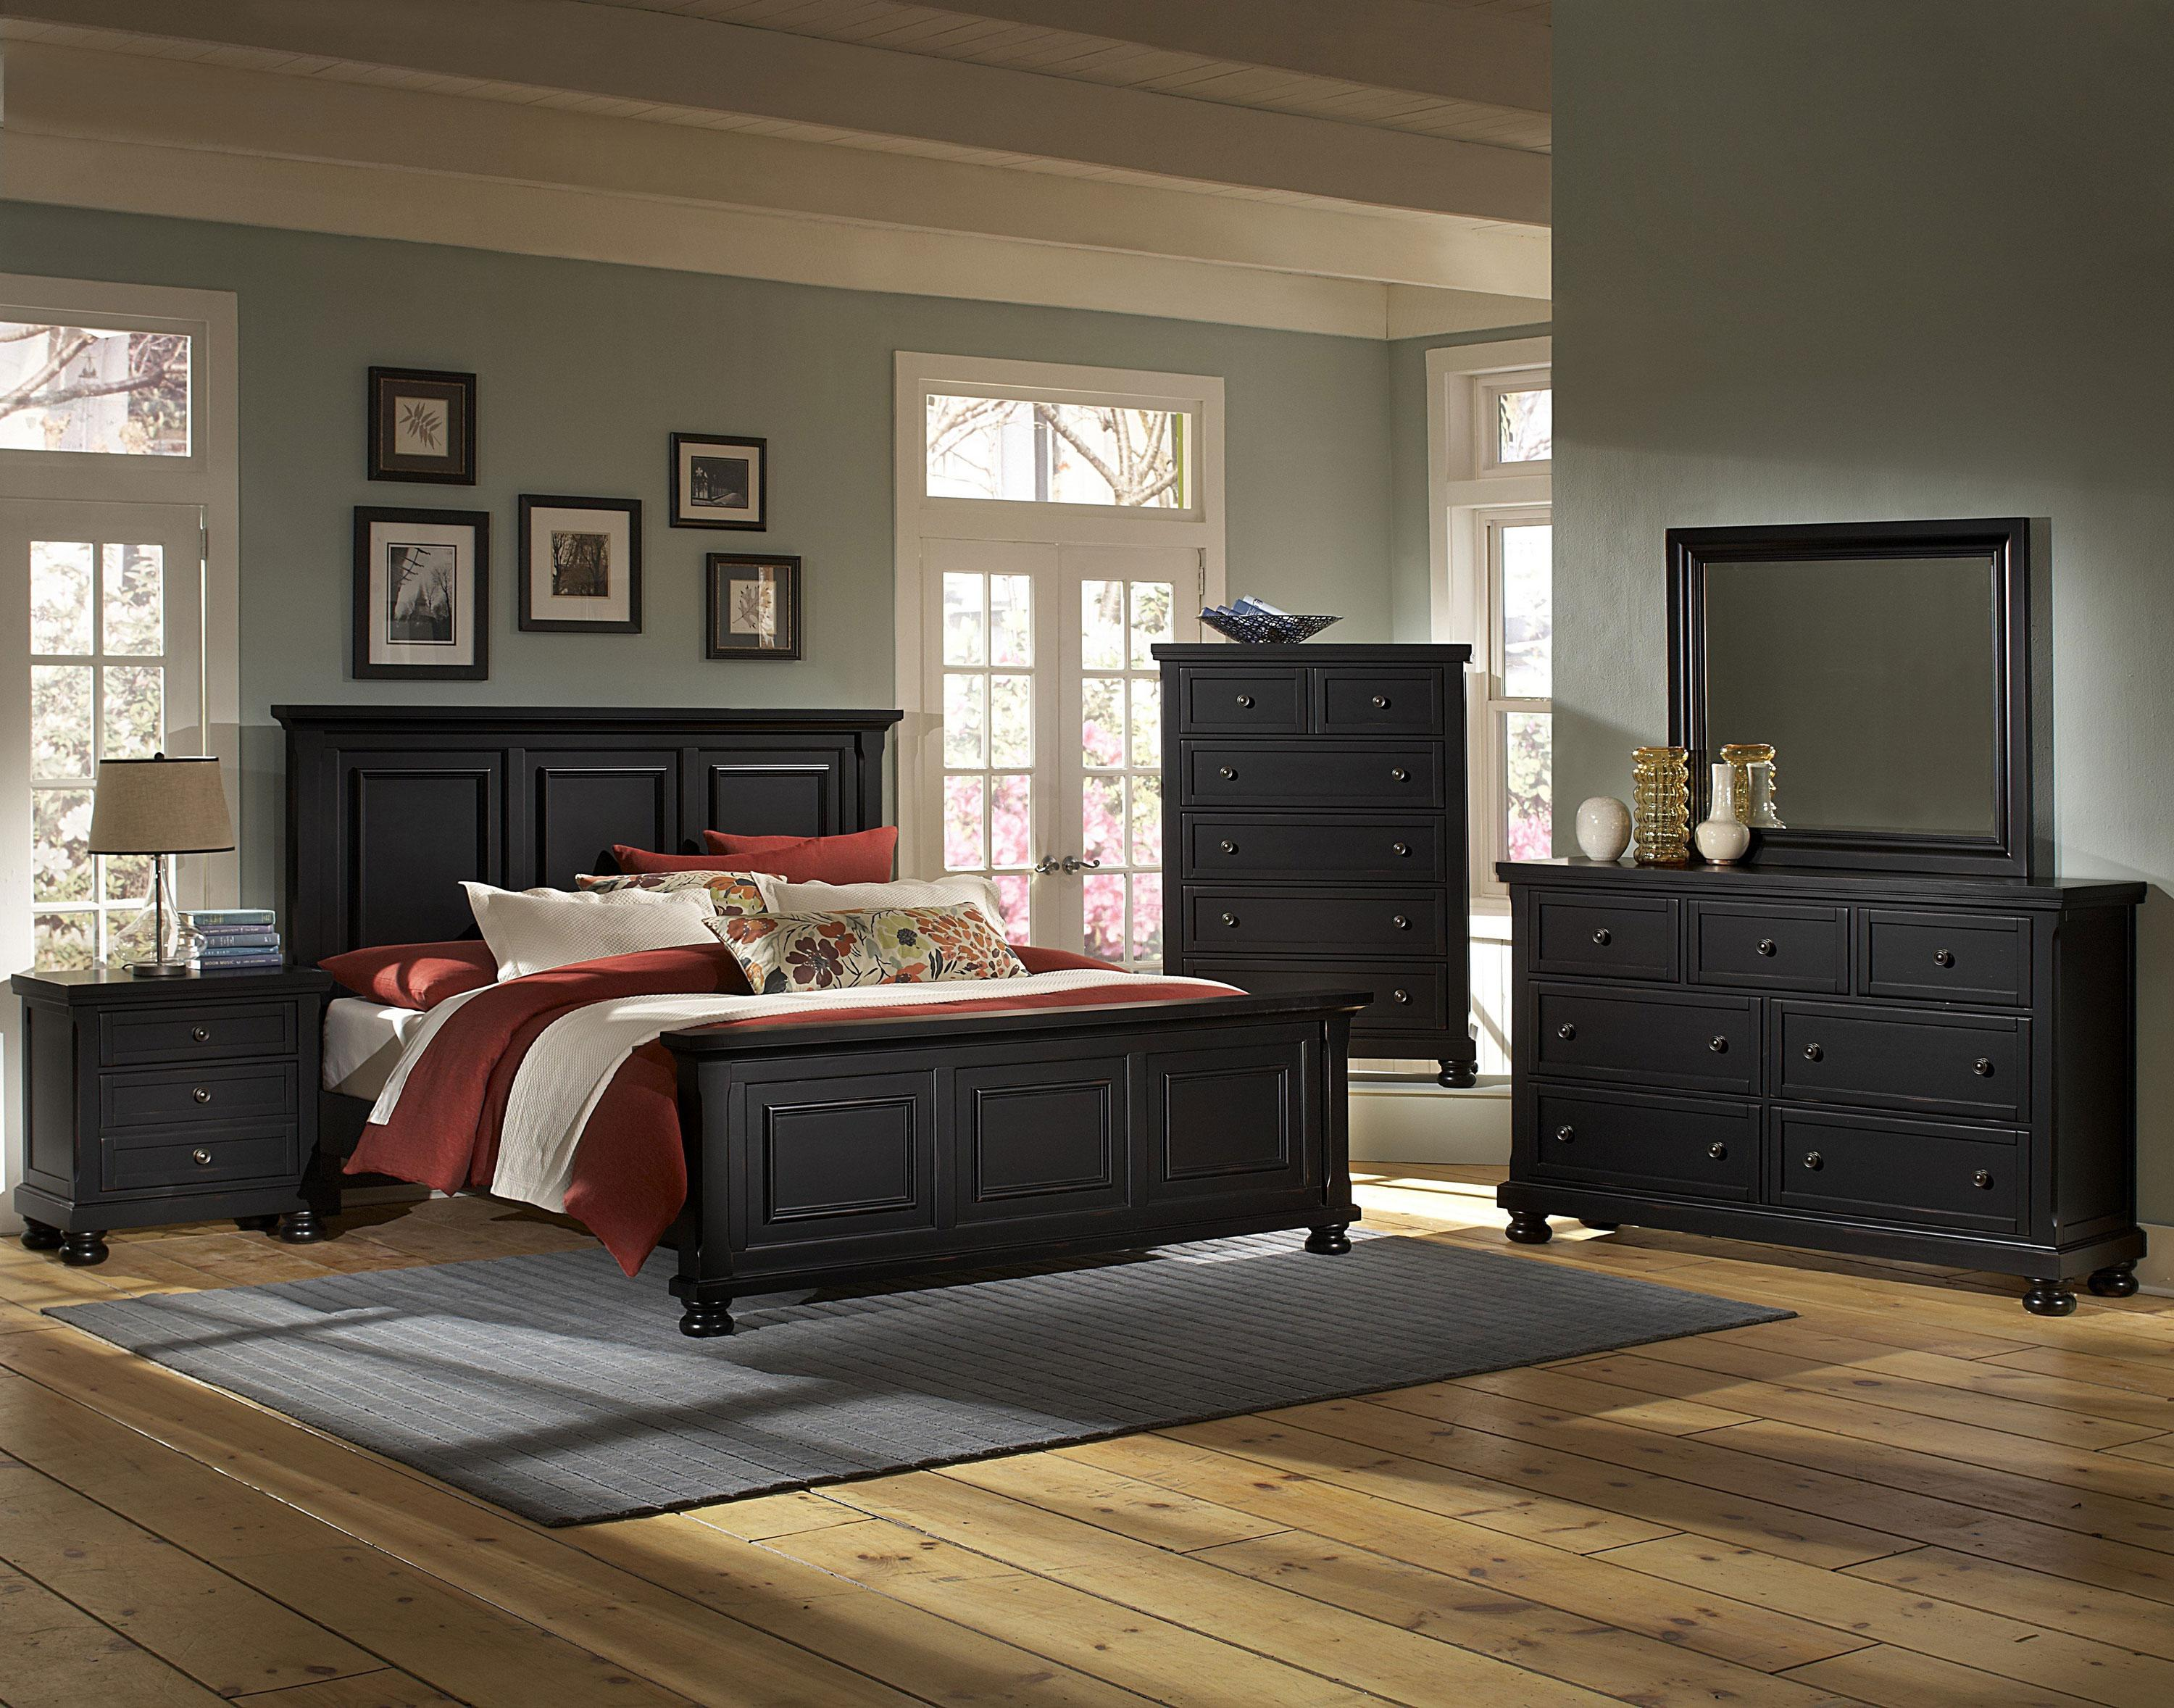 Vaughan Bassett Reflections Queen Storage Bed With Mansion Headboard |  Northeast Factory Direct | Platform Beds/Low Profile Beds Cleveland,  Eastlake, ...